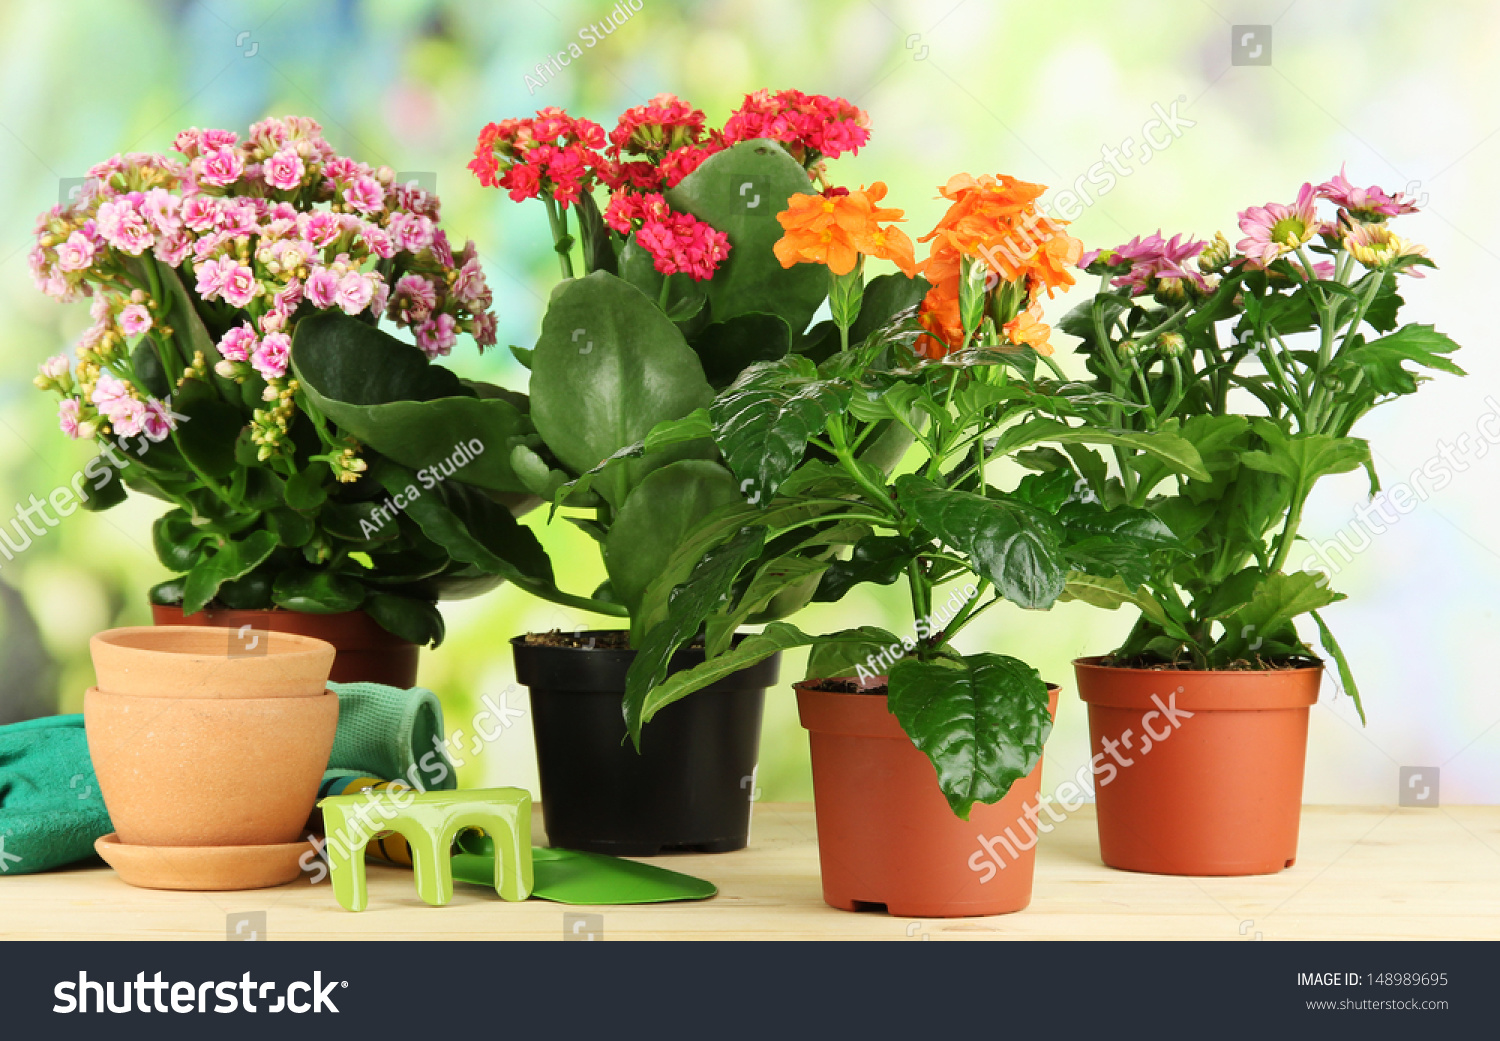 Beautiful Flowers Pots On Wooden Table Stock Photo Royalty Free